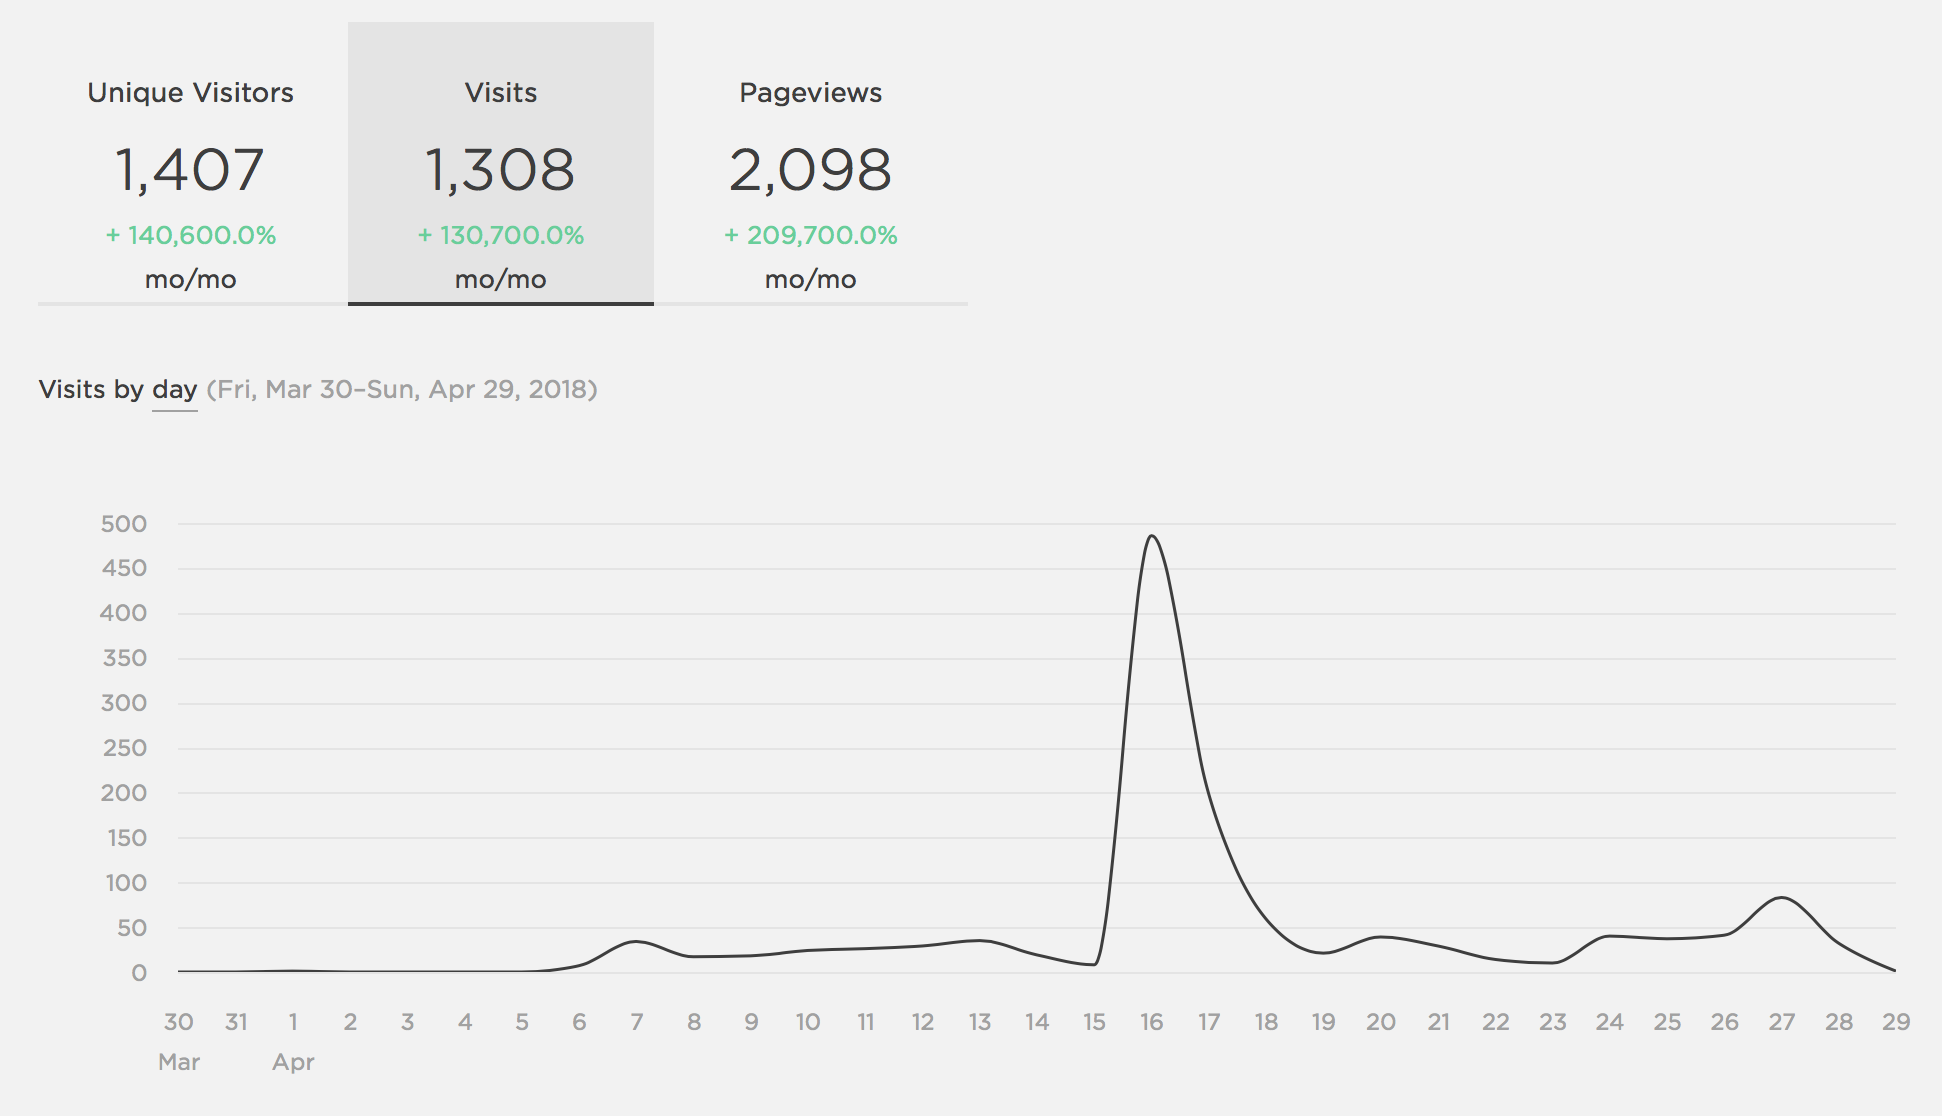 Blog analytics from April 6 - April 29